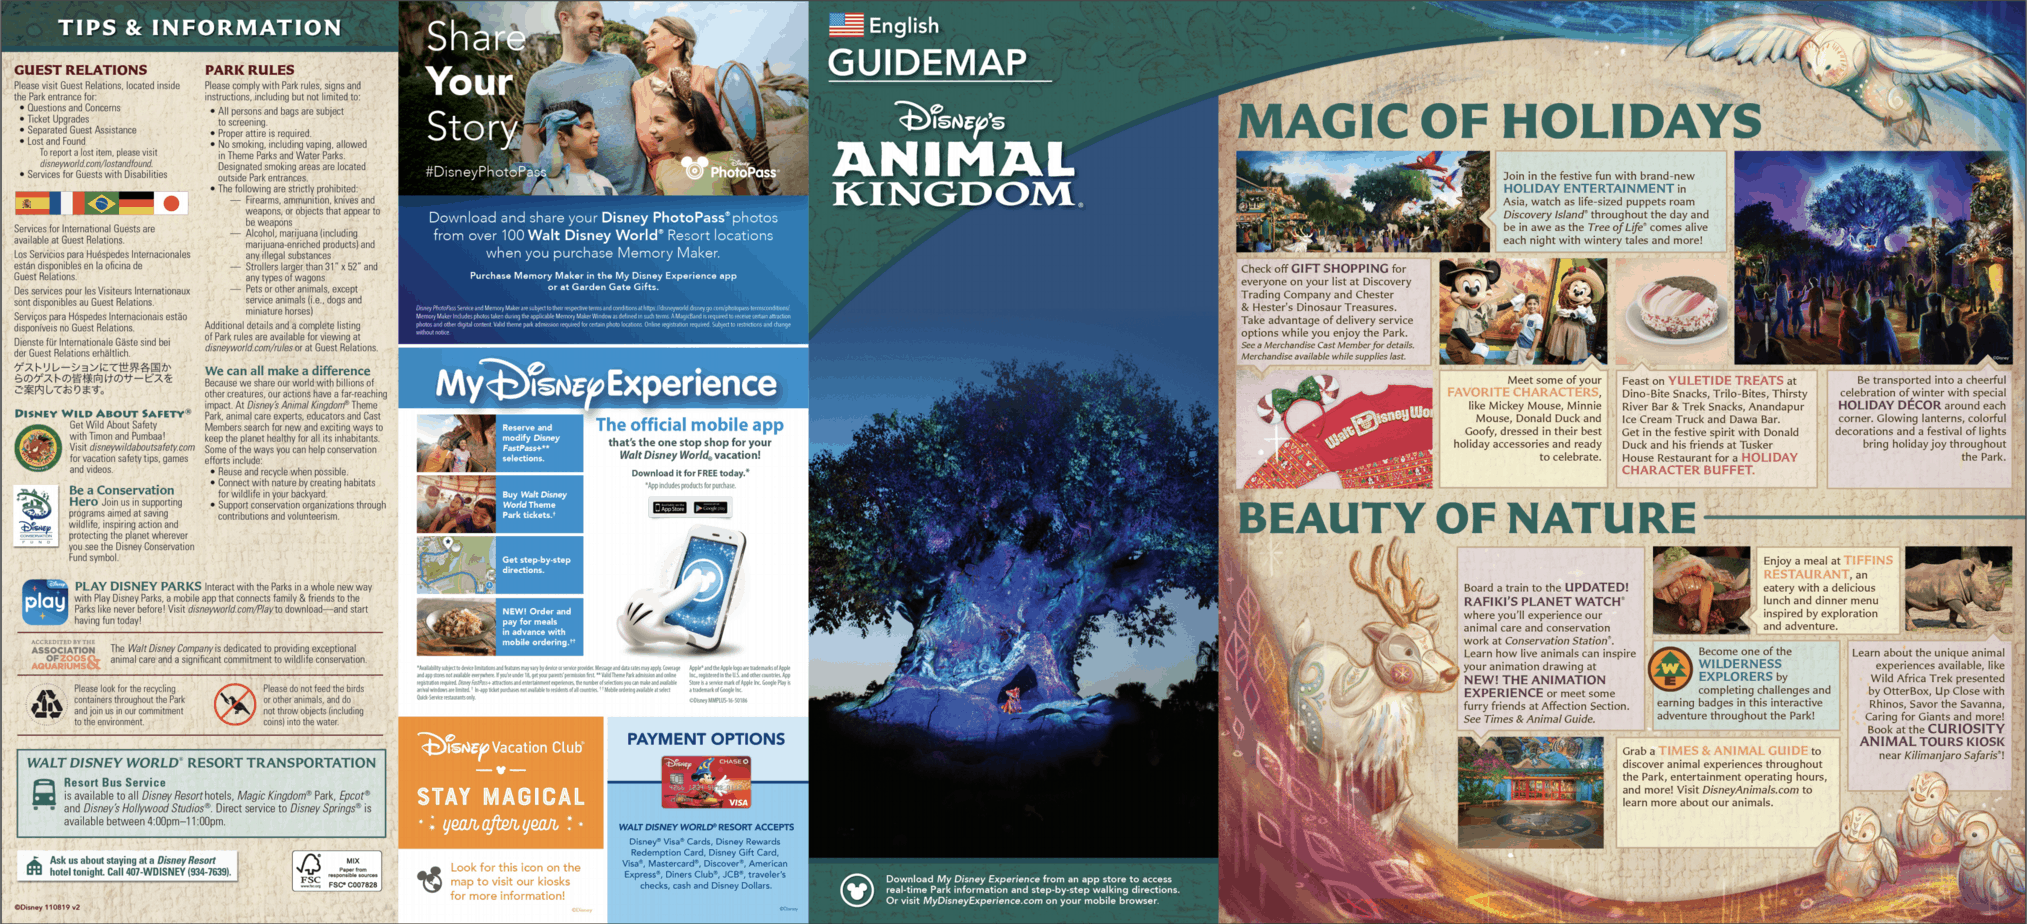 Animal Kingdom Map Disney World 2